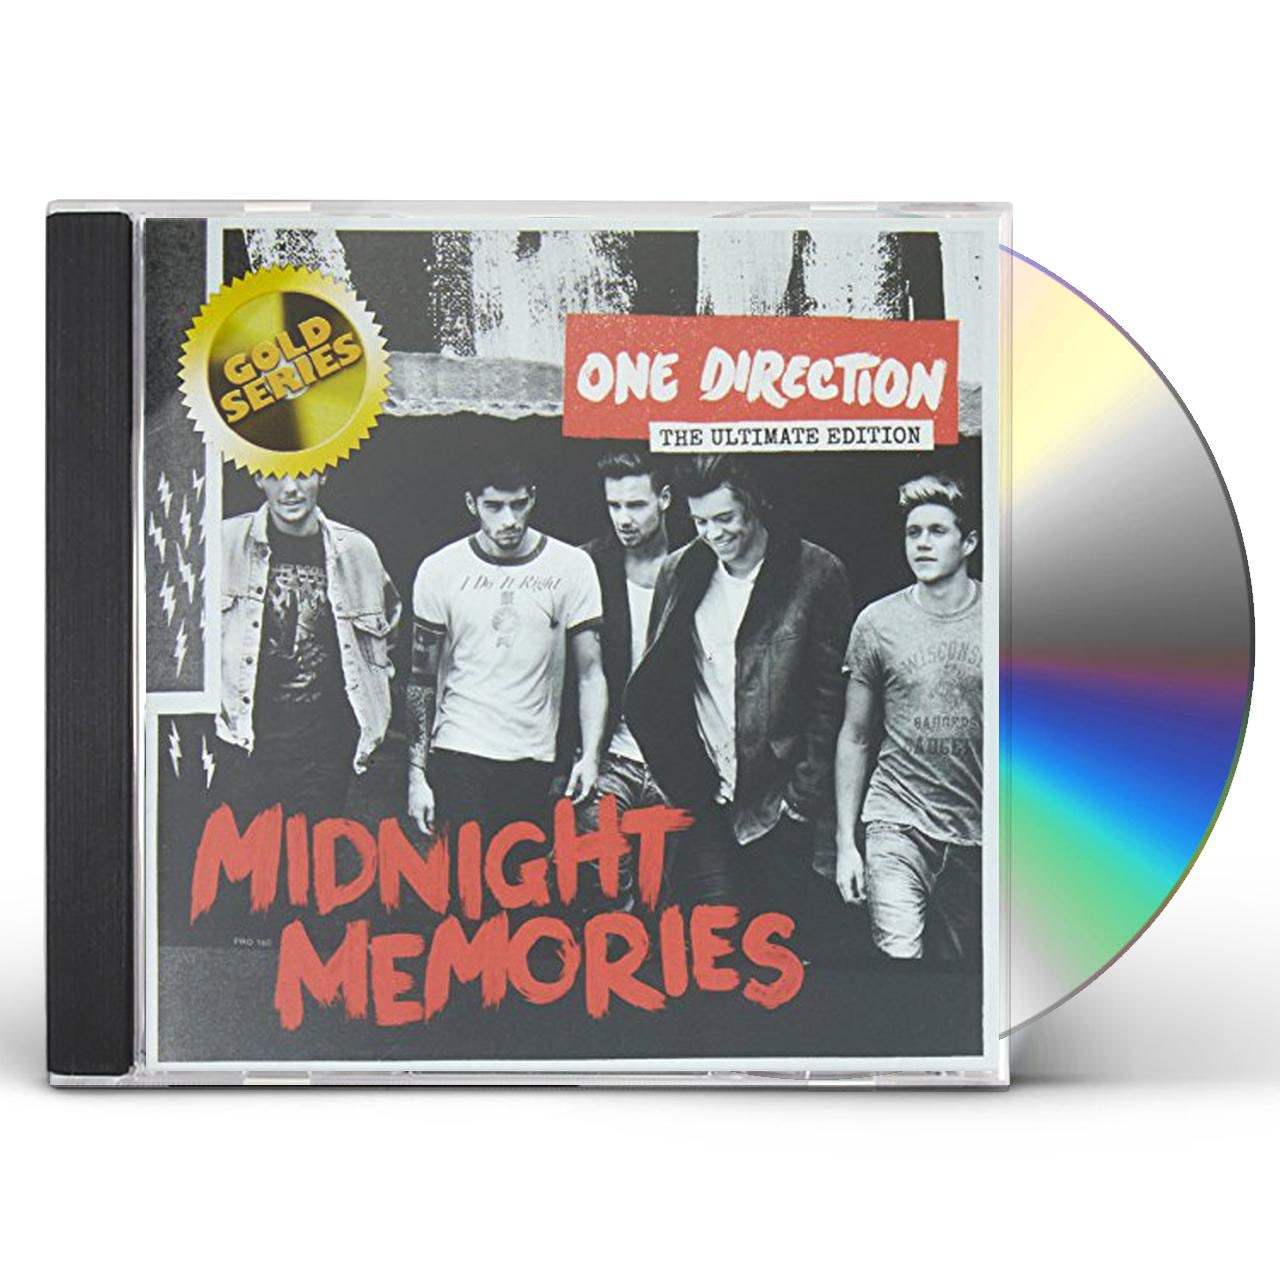 One Direction MIDNIGHT MEMORIES DELUXE (GOLD SERIES) CD